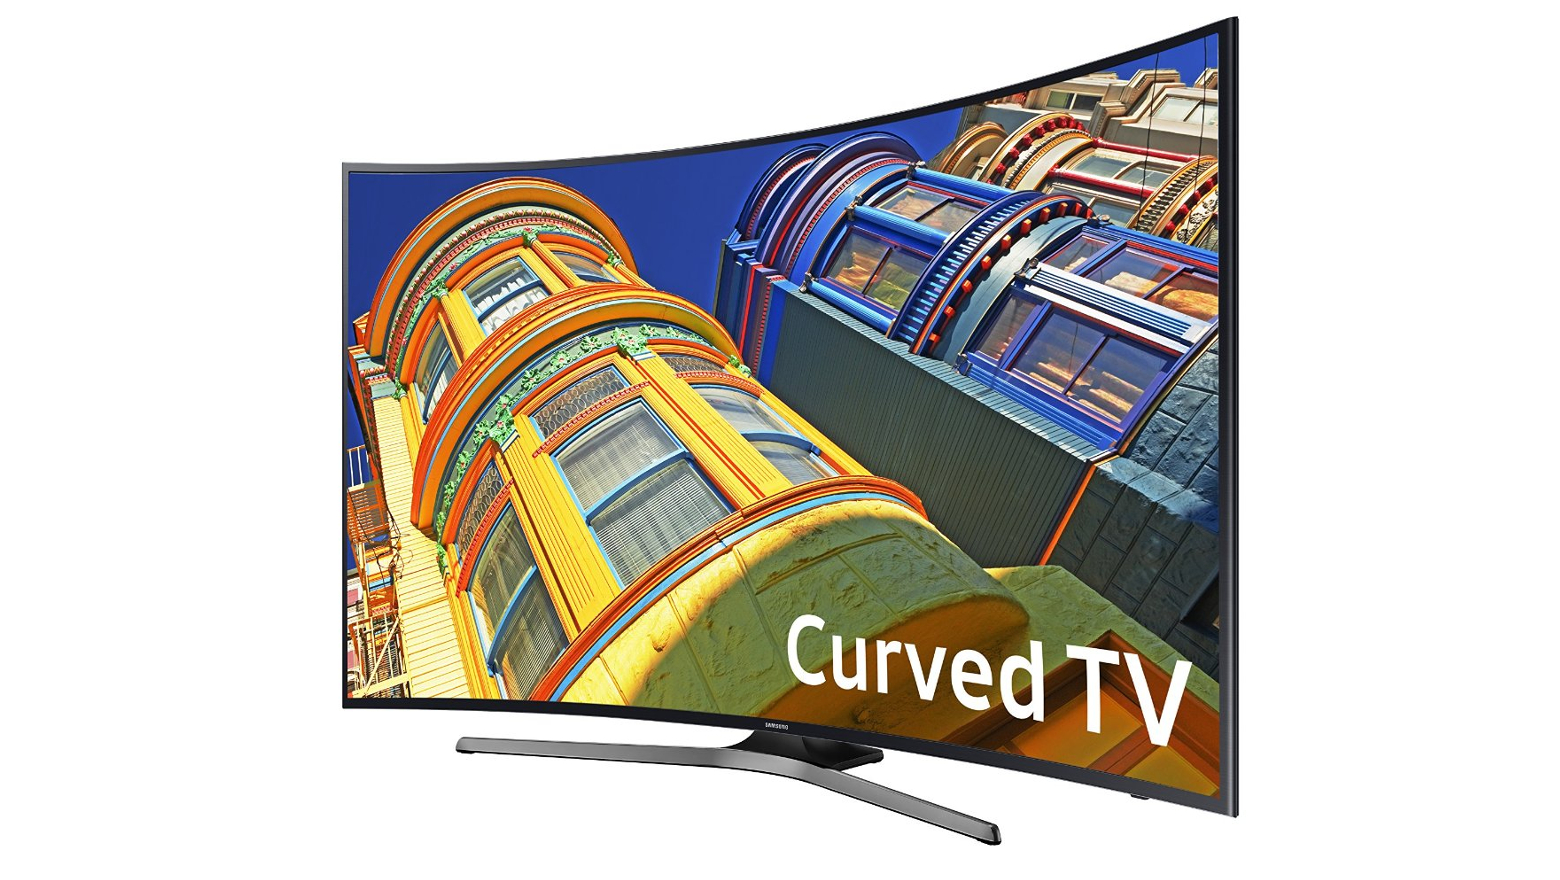 best 4k tv, 4k tv, uhd, top 10 uhd tv, highest rated 4k tv, 4k tv reviews, best 4k tv deals, curved tv, best curved tv, curved tv 4k, 55 curved tv, 55 inch curved tv